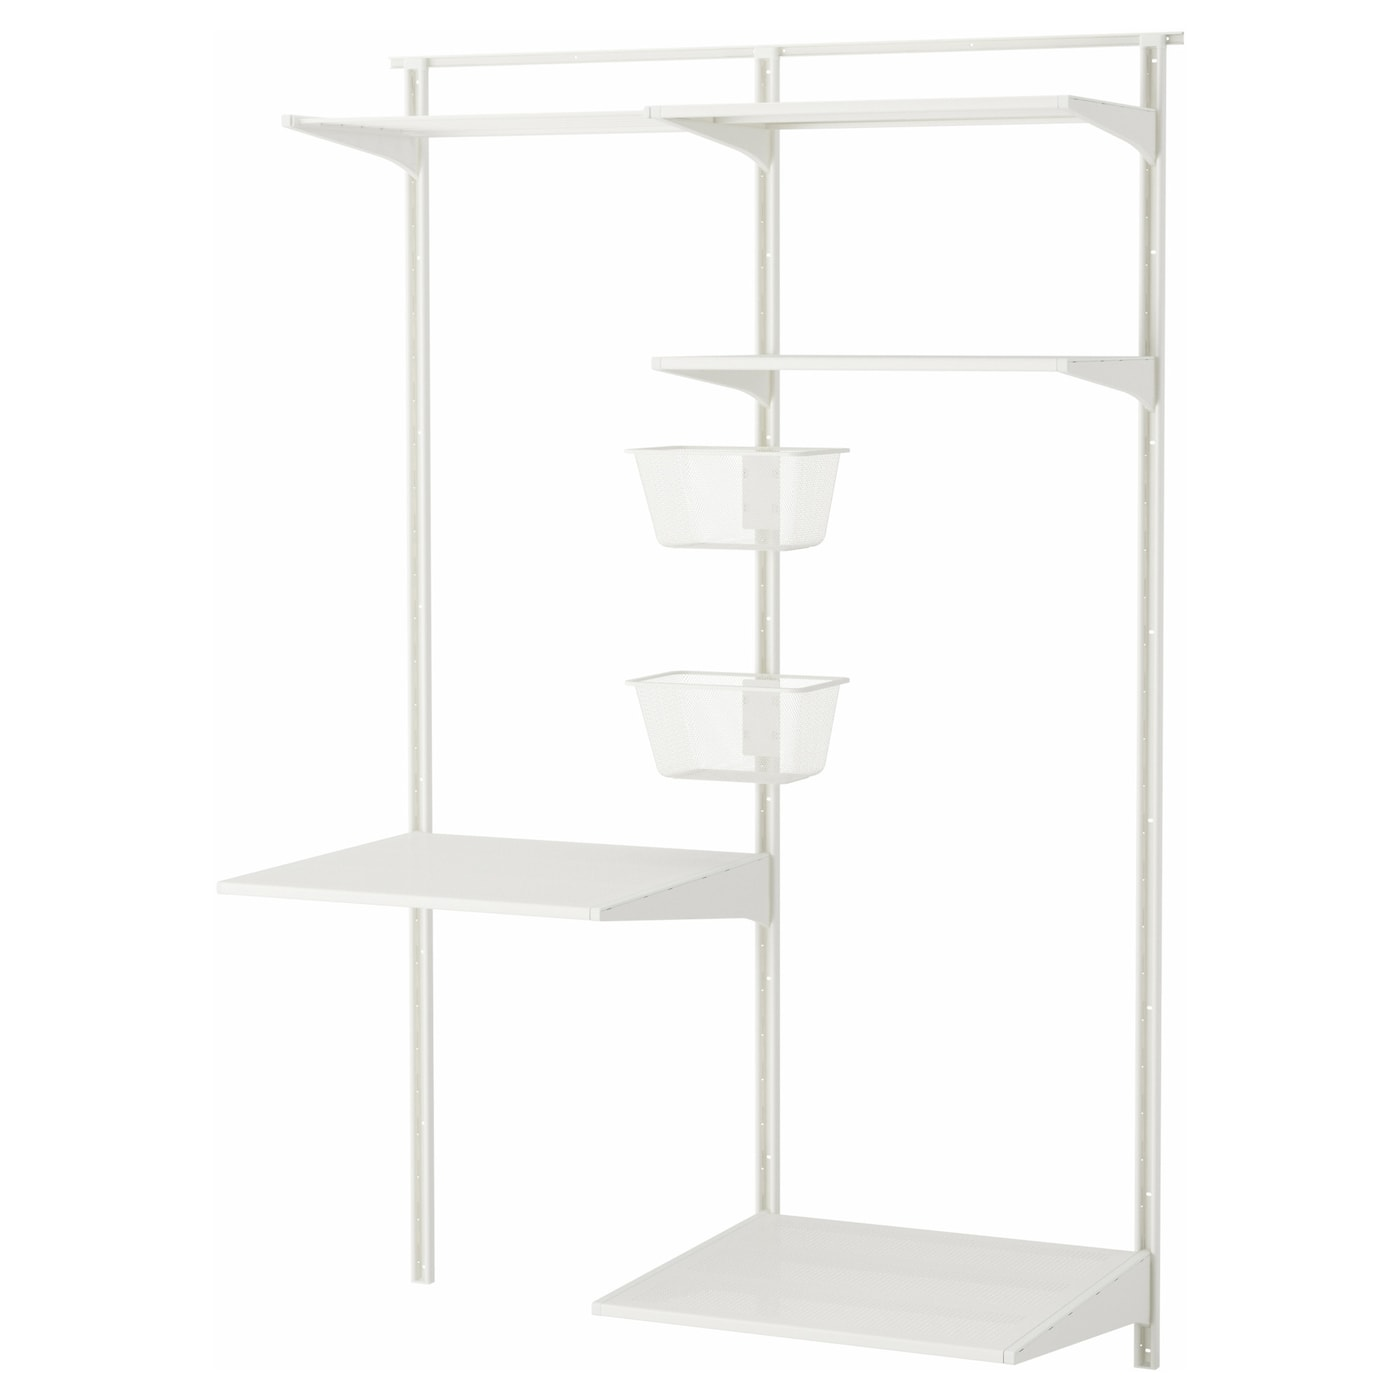 algot wall upright shelves drying rack metal white. Black Bedroom Furniture Sets. Home Design Ideas